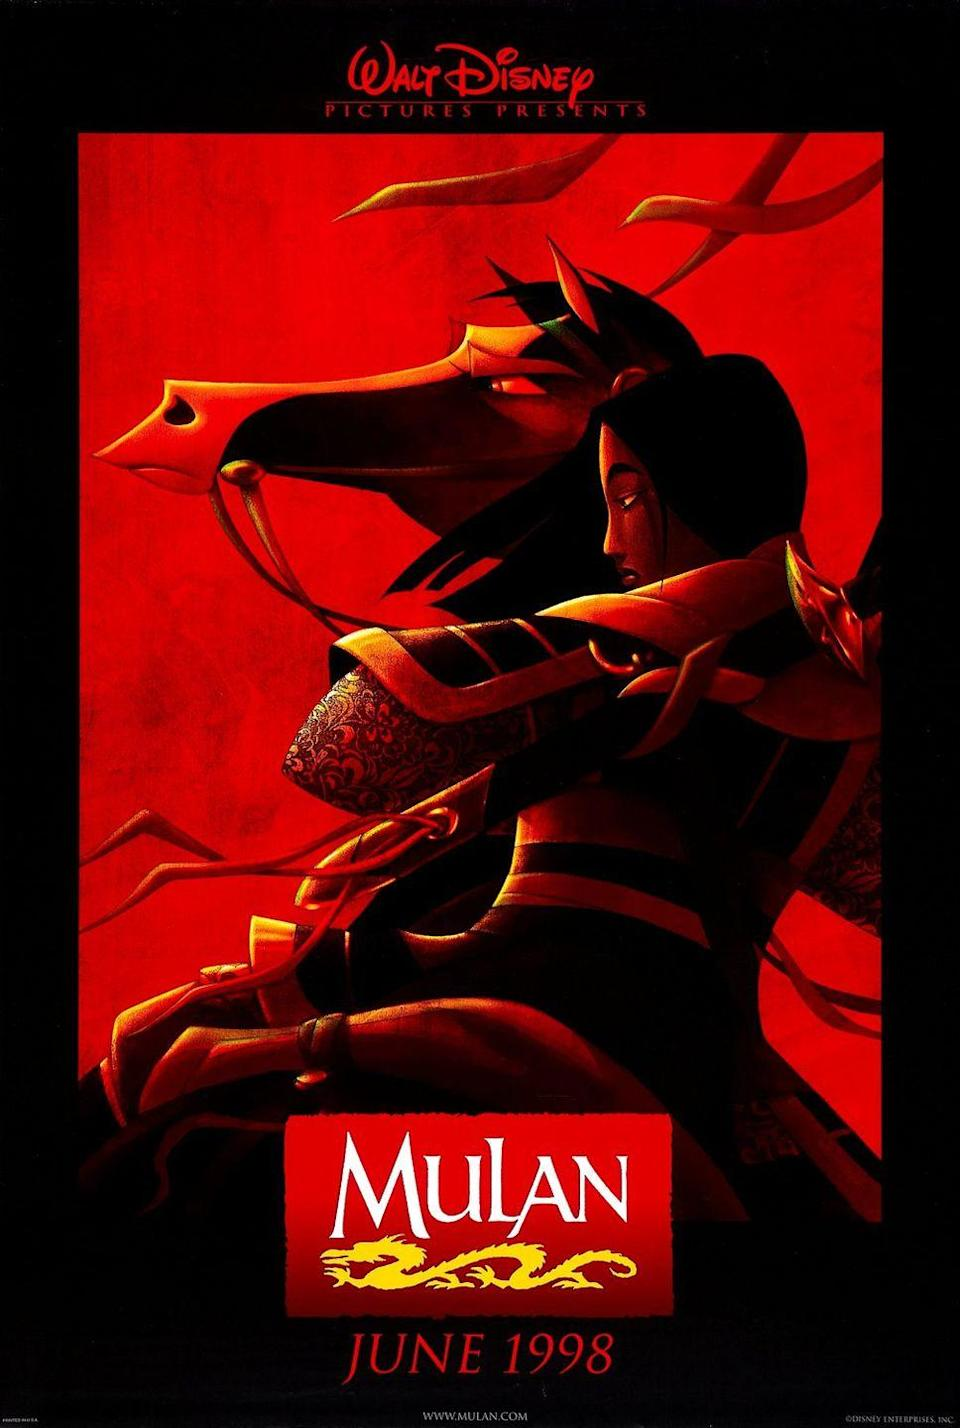 """<p>So far, fans are on the fence about the new <em>Mulan</em> remake, after finding out <a href=""""https://www.seventeen.com/celebrity/movies-tv/a45841/twitter-reactions-mulan-not-a-musical/"""" rel=""""nofollow noopener"""" target=""""_blank"""" data-ylk=""""slk:it won't be a musical and your childhood crush Li Shang won't be in it"""" class=""""link rapid-noclick-resp"""">it won't be a musical <em>and</em> your childhood crush Li Shang won't be in it</a>. It <a href=""""https://www.cosmopolitan.com/entertainment/movies/a21204751/disney-live-action-mulan-love-interest-yoson-an/"""" rel=""""nofollow noopener"""" target=""""_blank"""" data-ylk=""""slk:will NOT star a white male protagonist"""" class=""""link rapid-noclick-resp"""">will NOT star a white male protagonist</a>, as had been rumored (<em>thank god</em>), and <a href=""""https://www.seventeen.com/celebrity/movies-tv/a13978336/disney-casts-liu-yifei-as-live-action-mulan/"""" rel=""""nofollow noopener"""" target=""""_blank"""" data-ylk=""""slk:Liu Yifei will play the lead"""" class=""""link rapid-noclick-resp"""">Liu Yifei will play the lead</a>. Gong Li and Jason Scott Lee <a href=""""https://www.hollywoodreporter.com/heat-vision/disneys-mulan-adds-jason-scott-lee-1129918"""" rel=""""nofollow noopener"""" target=""""_blank"""" data-ylk=""""slk:will be playing villains"""" class=""""link rapid-noclick-resp"""">will be playing villains</a> while Donnie Yen, Yoson An, and Ron Yuan will play some of the people on Moulin's team. Jet Li, Utkatarsh Ambudkar, Xana Tang, and Chum Ehelepola round out the cast. The movie was supposed to be released in March 2020 but it got pushed back because of concerns and movie theater closes <a href=""""https://www.seventeen.com/celebrity/movies-tv/a31469986/disney-delaying-movies-coronavirus/"""" rel=""""nofollow noopener"""" target=""""_blank"""" data-ylk=""""slk:caused by the Coronavirus"""" class=""""link rapid-noclick-resp"""">caused by the Coronavirus</a>. </p><p><a class=""""link rapid-noclick-resp"""" href=""""https://www.amazon.com/dp/B003QSMCKO?tag=syn-yahoo-20&ascsubtag=%5Bartid%7C10065.g.2936%5Bsrc%7Cyahoo-us"""" rel=""""nofollow """